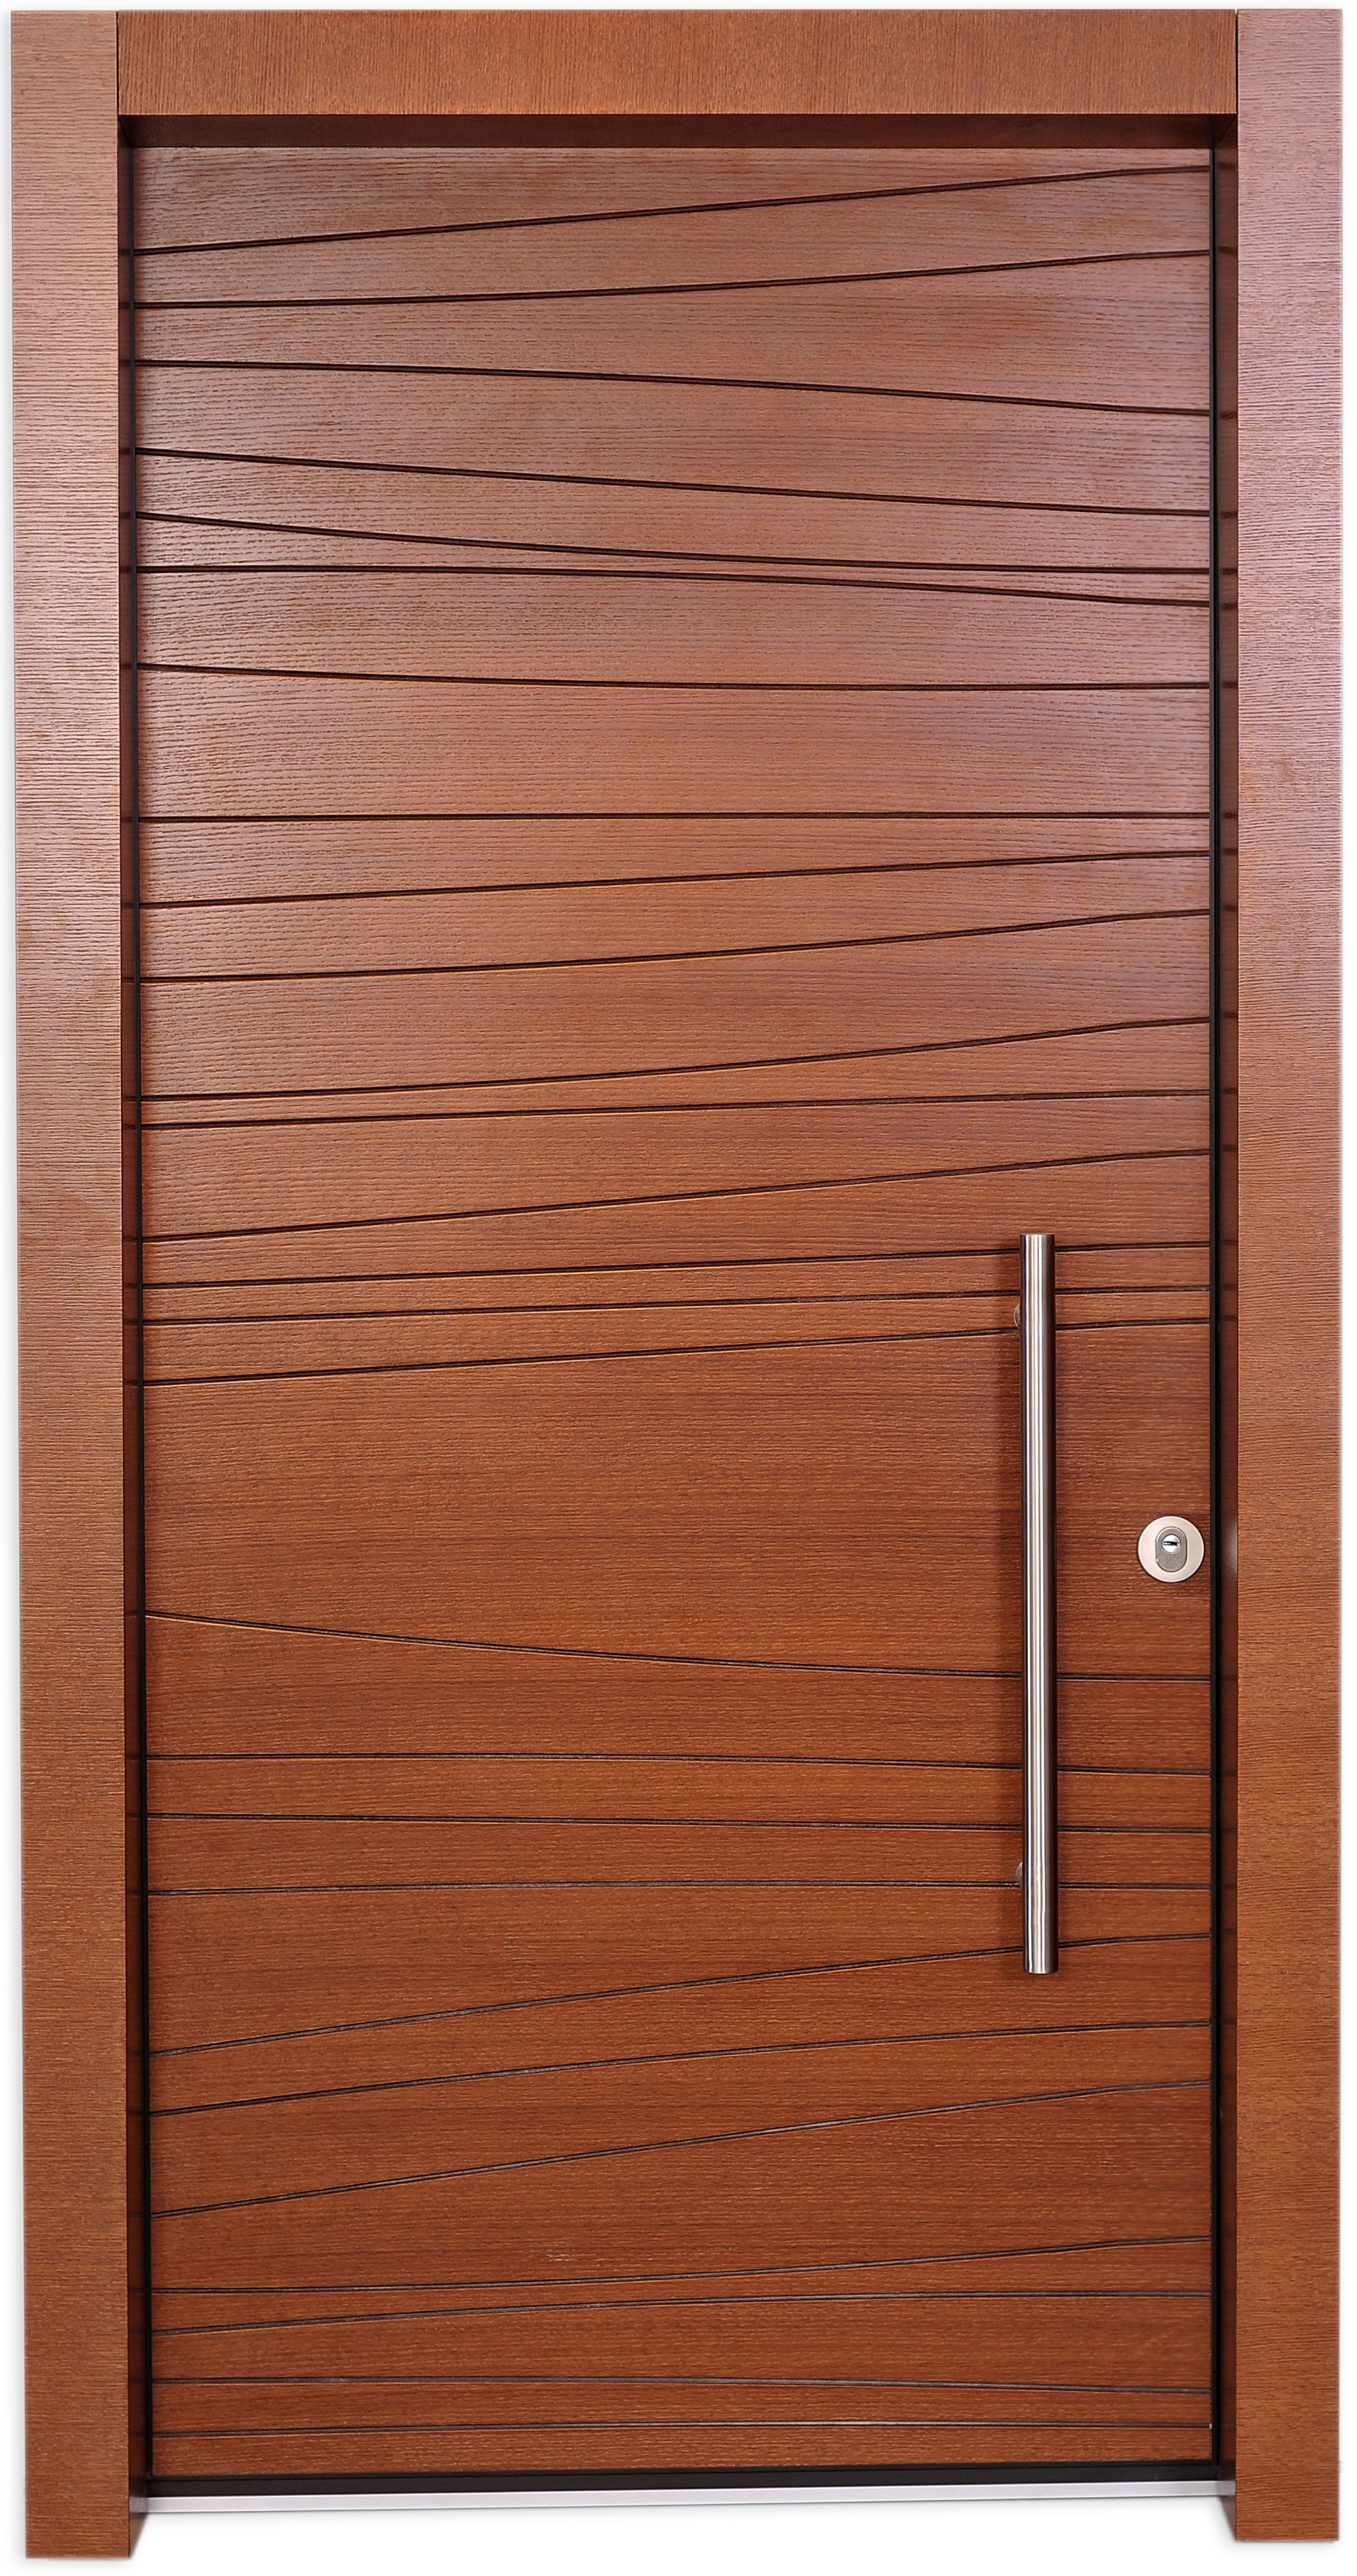 Shdema Door Is Designed Using A Simple Free Line Engraved In A Veneer Board The Door Is Based On A Common Classic Design Using A Horizontal E With Images Flush Door